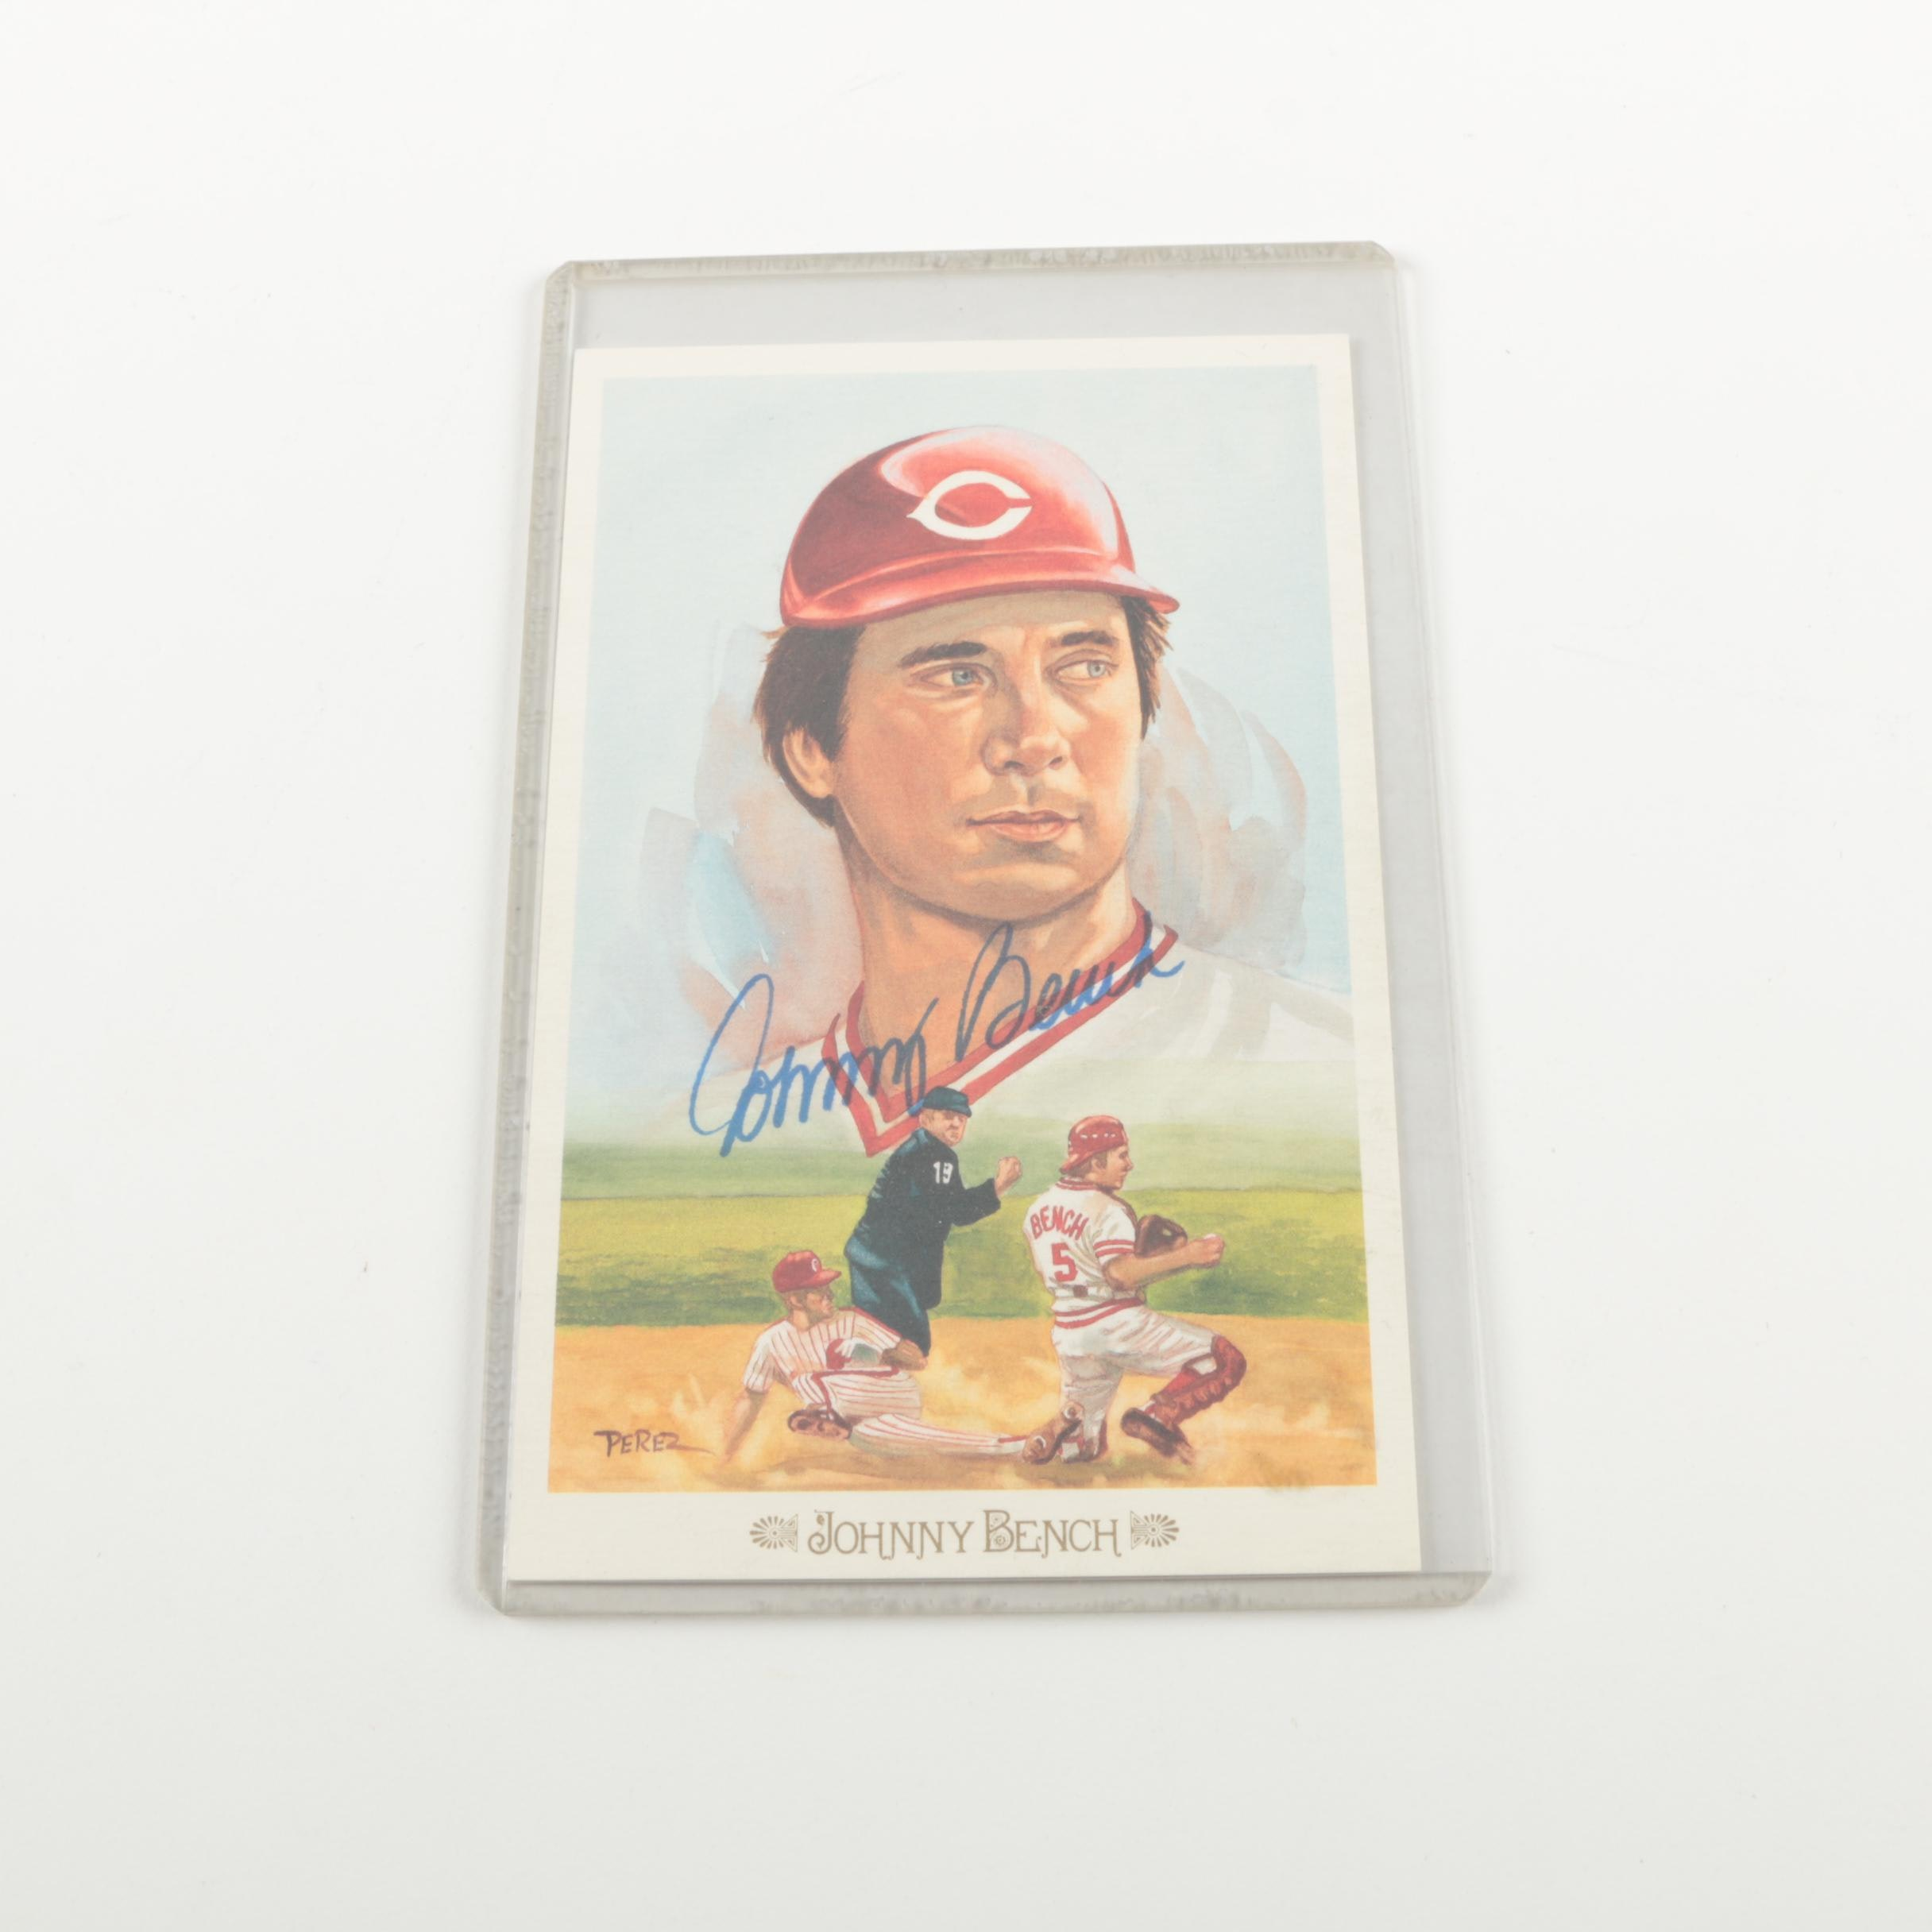 1989 Johnny Bench Autographed Postcard